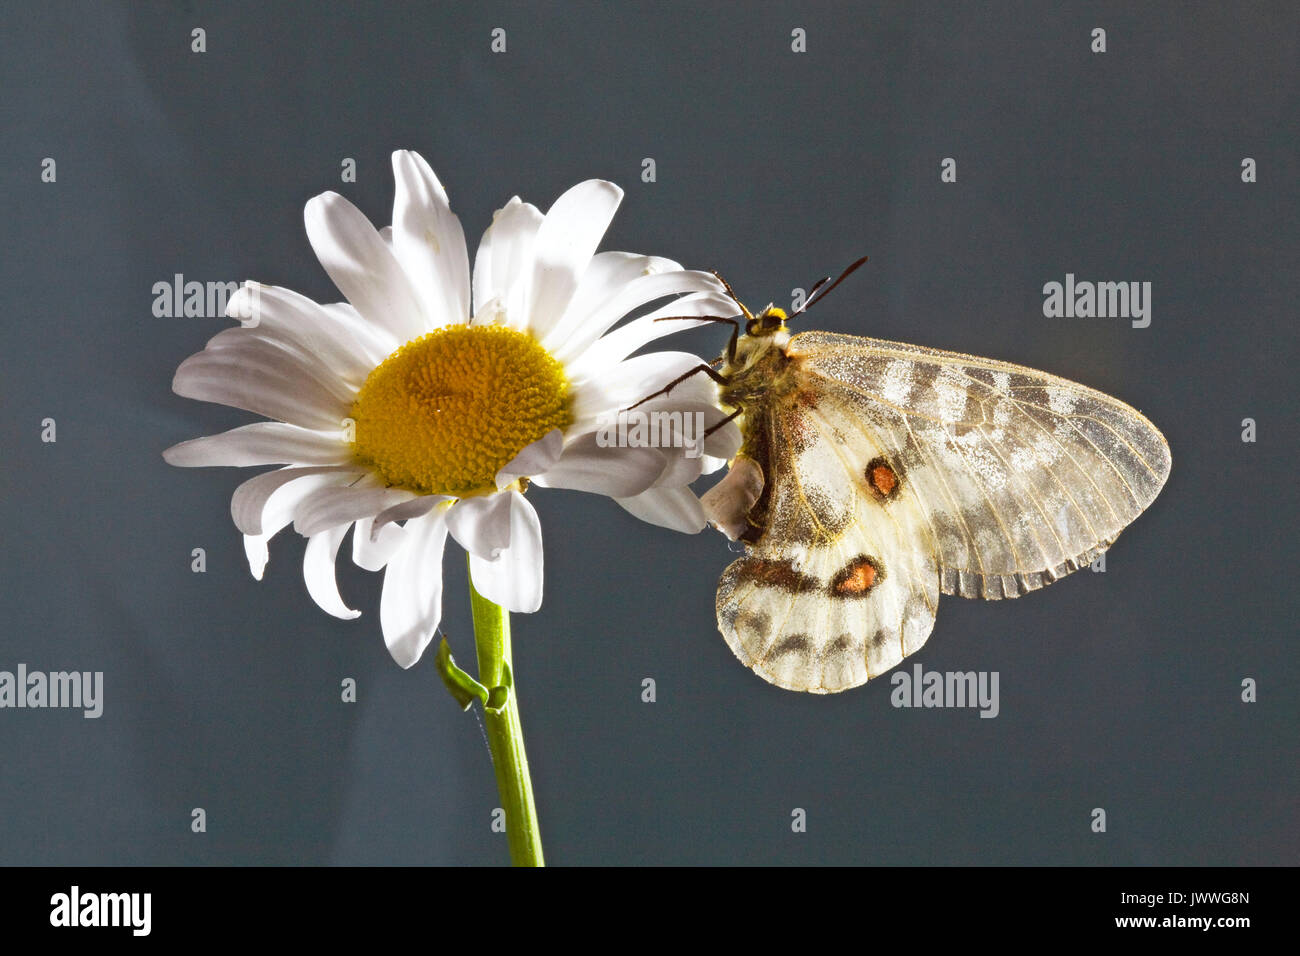 Portrait of a female Clodius Parnassian butterfly, Parnassius clodius, also known as American Apollo, and Clodius Apollo, with a sphragis attached to  - Stock Image